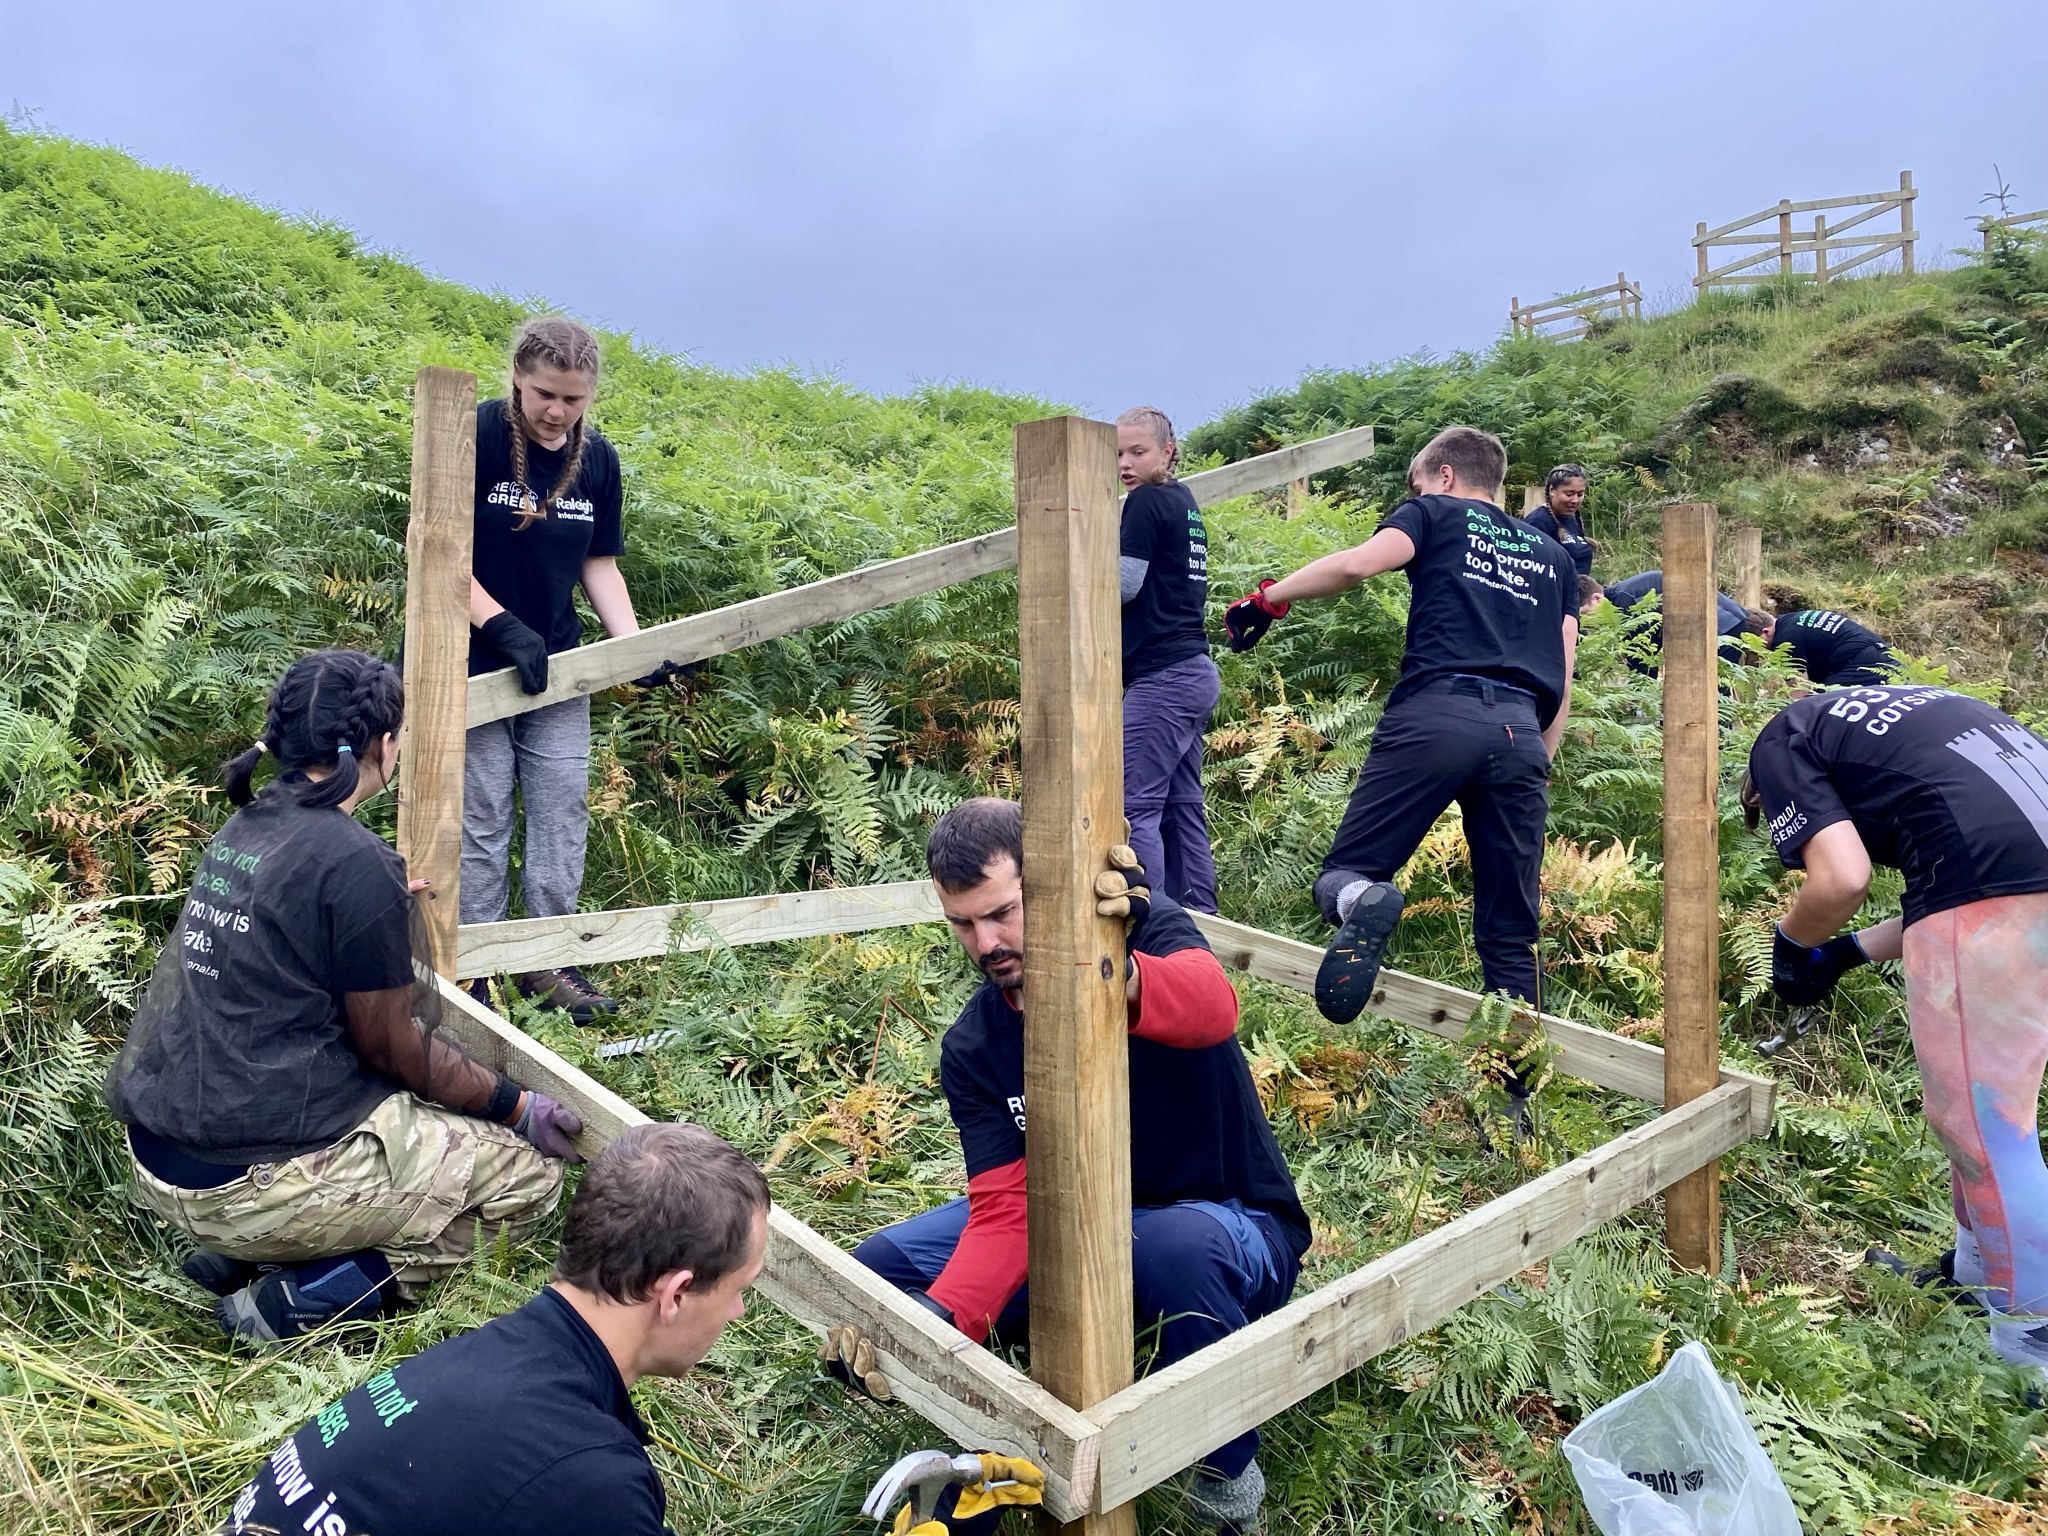 Volunteer in Scotland and help fight the climate emergency